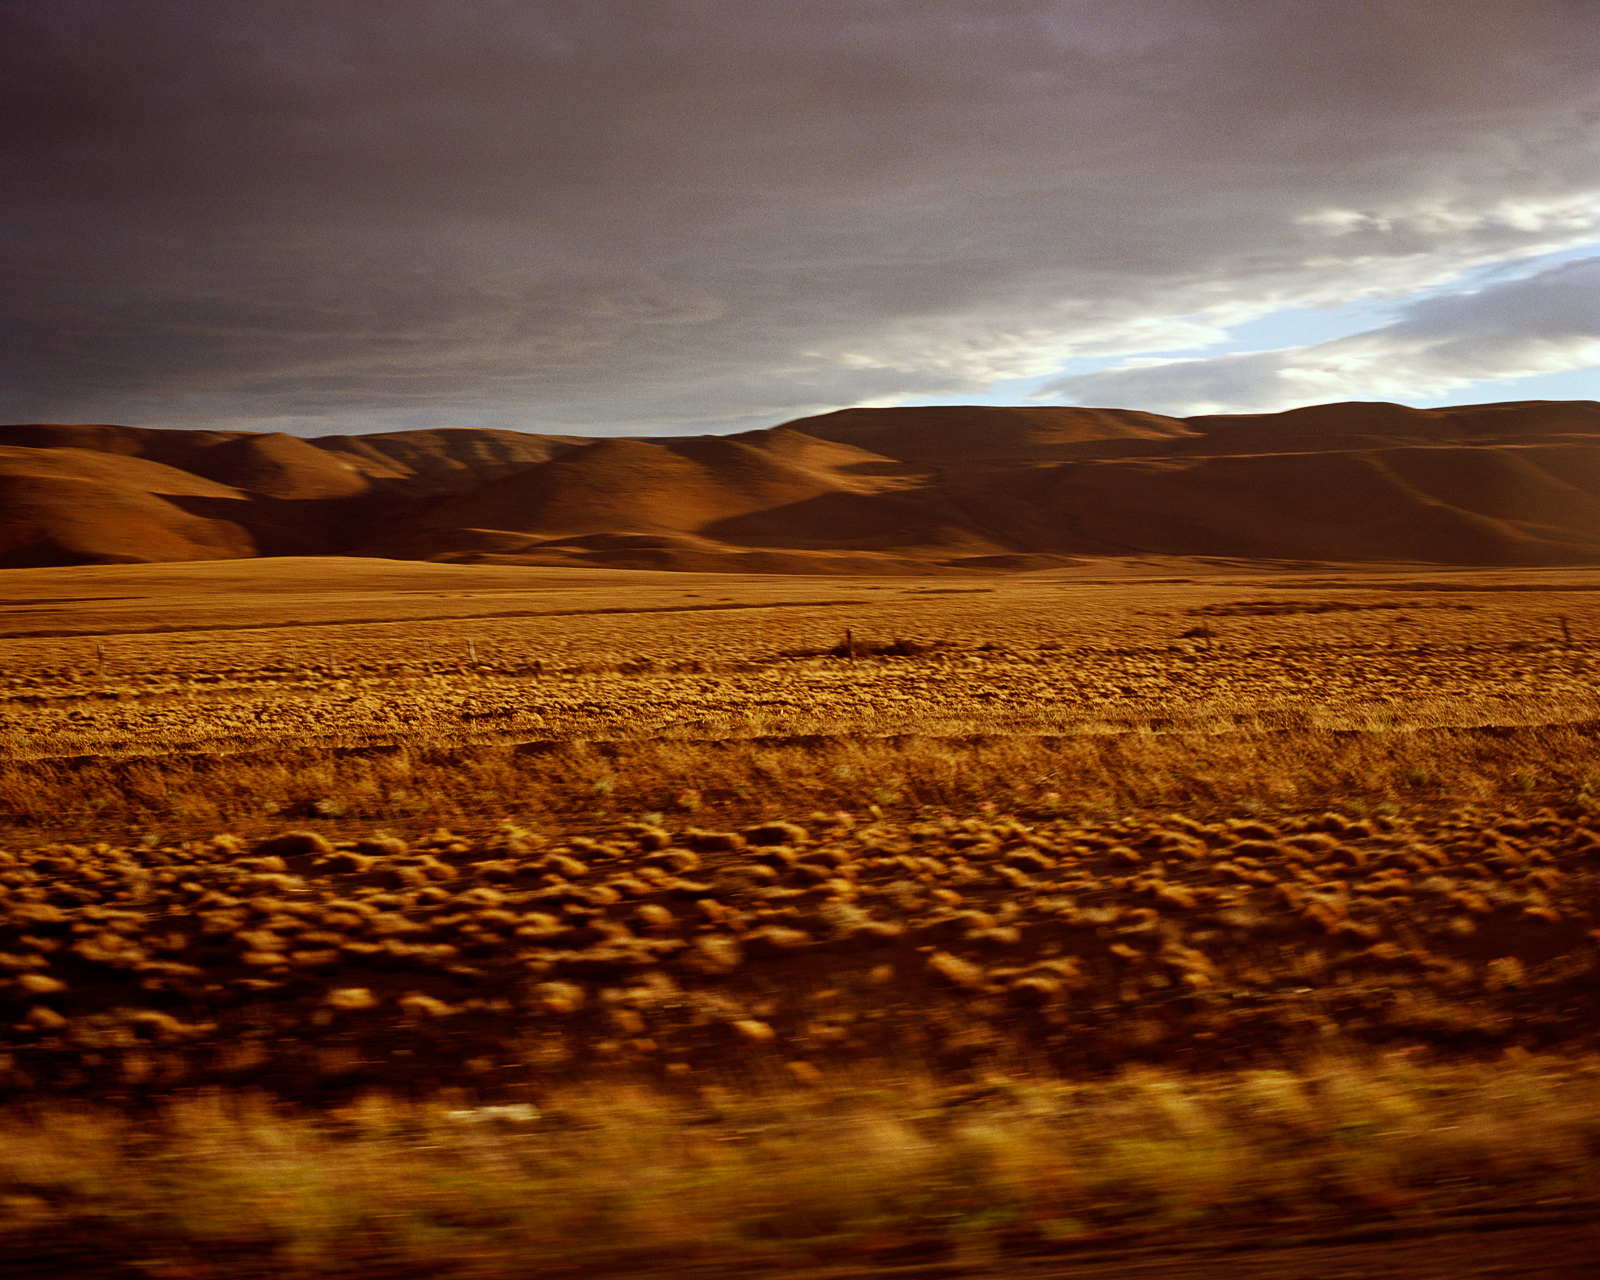 Patagonia, Argentina road trip, landscape photography